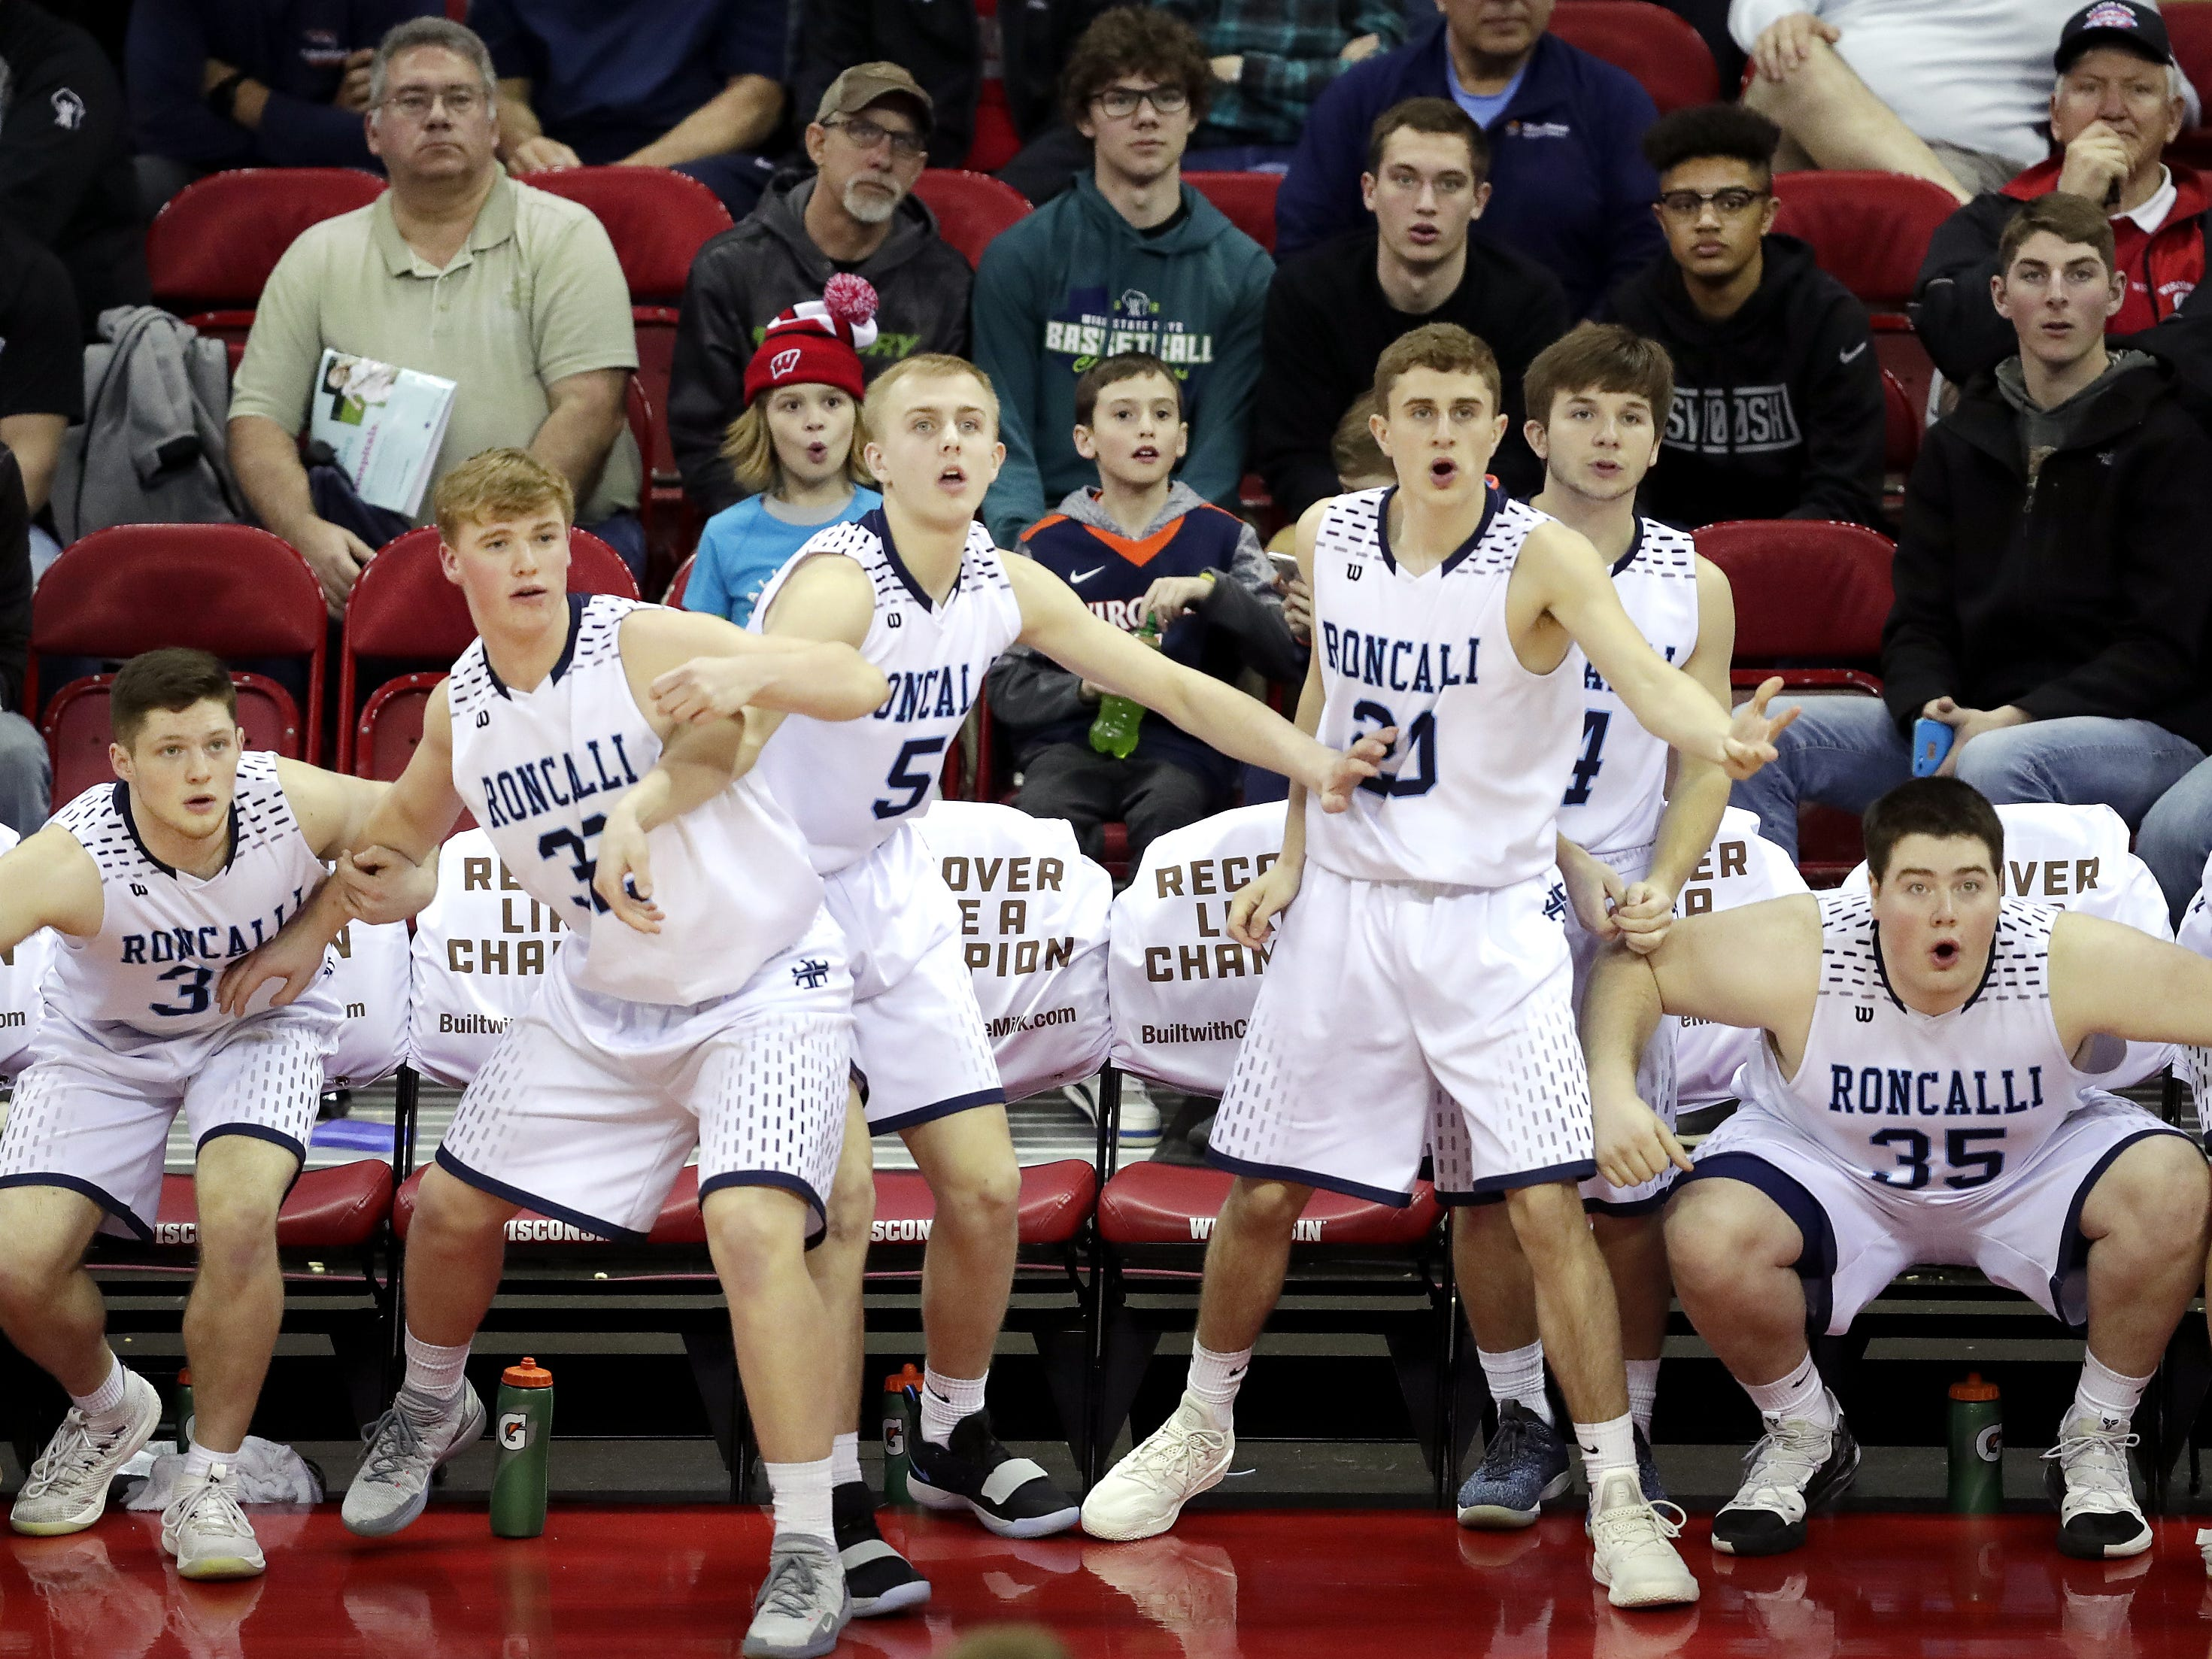 Roncalli High School against New Glarus High School during their WIAA Division 4 boys basketball state semifinal on Thursday, March 14, 2019, at the KohlCenter in Madison, Wis.  New Glarus defeated Roncalli 44 to 41. Wm. Glasheen/USA TODAY NETWORK-Wisconsin.